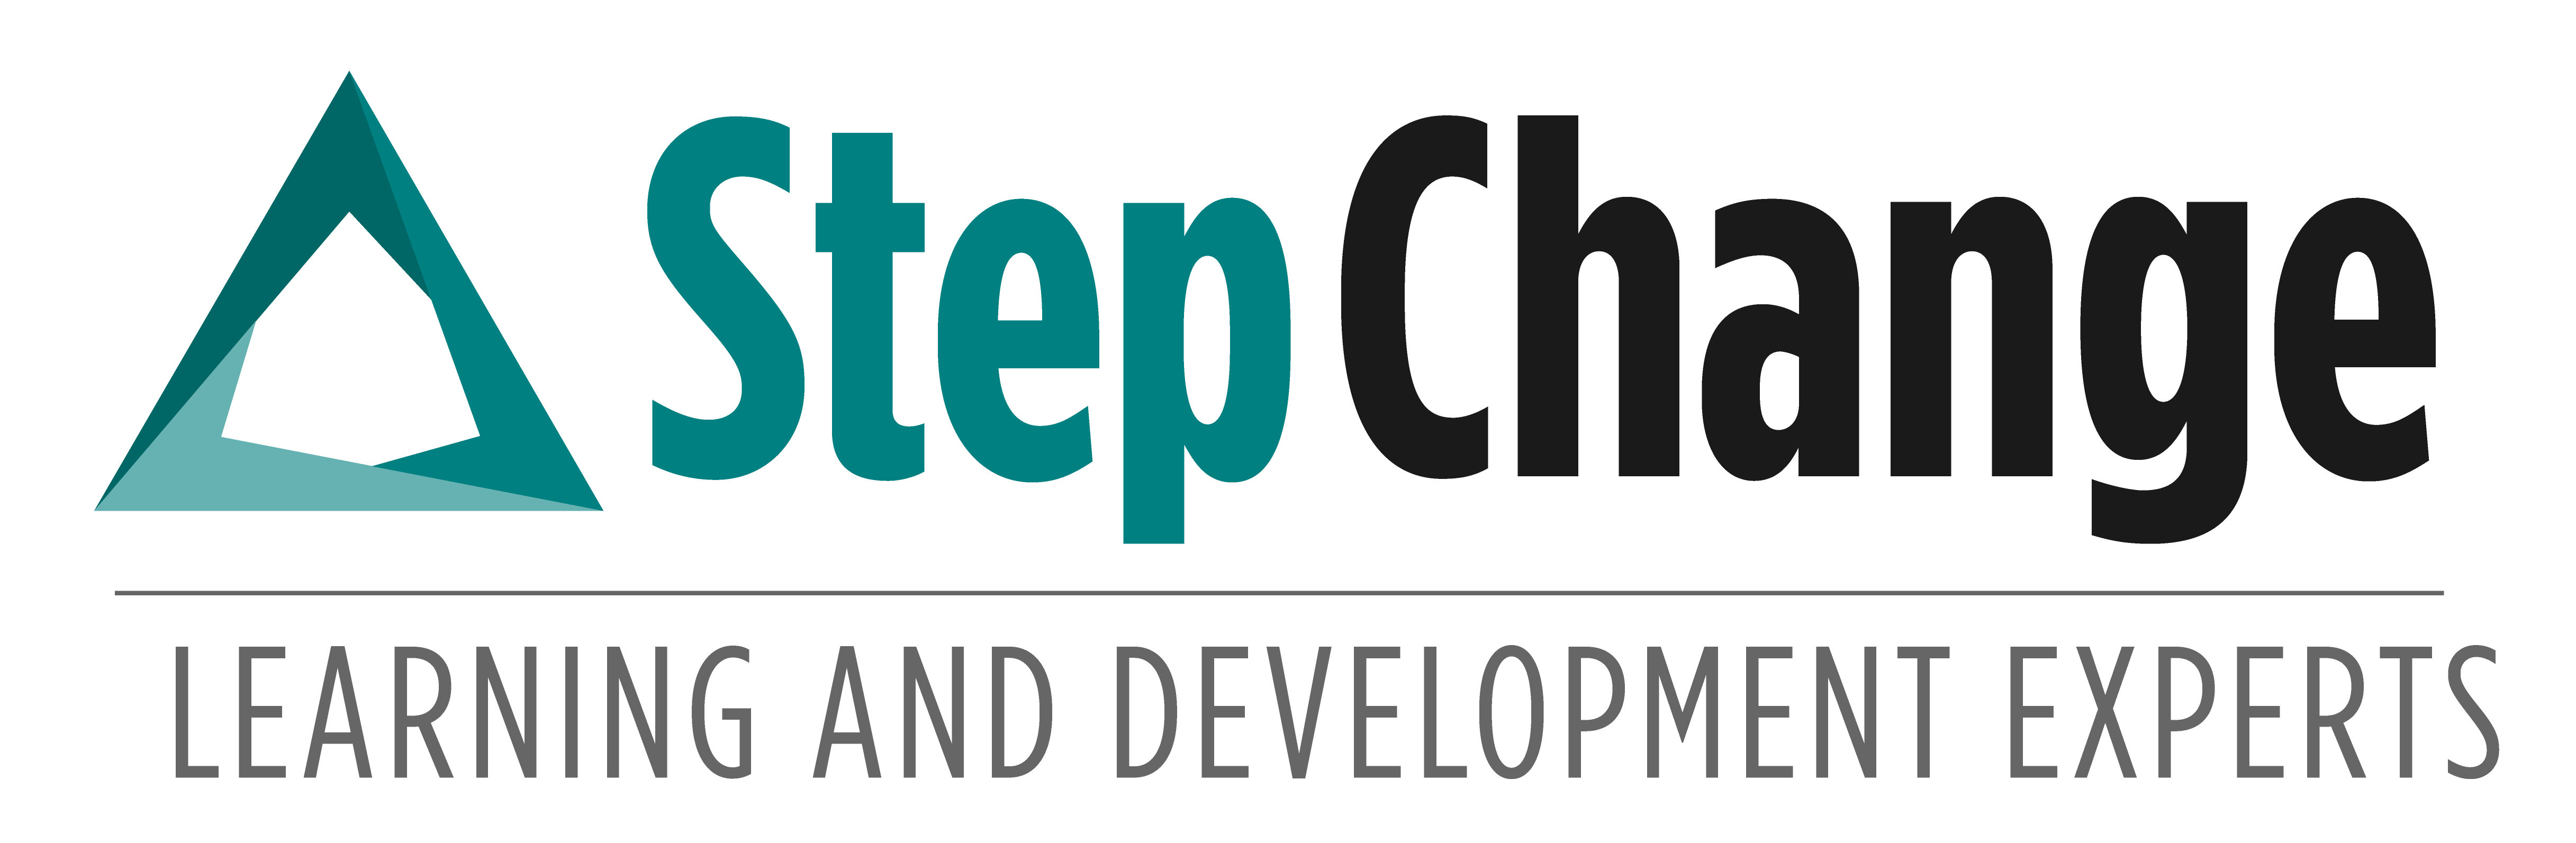 StepChange-learning-and-development-experts